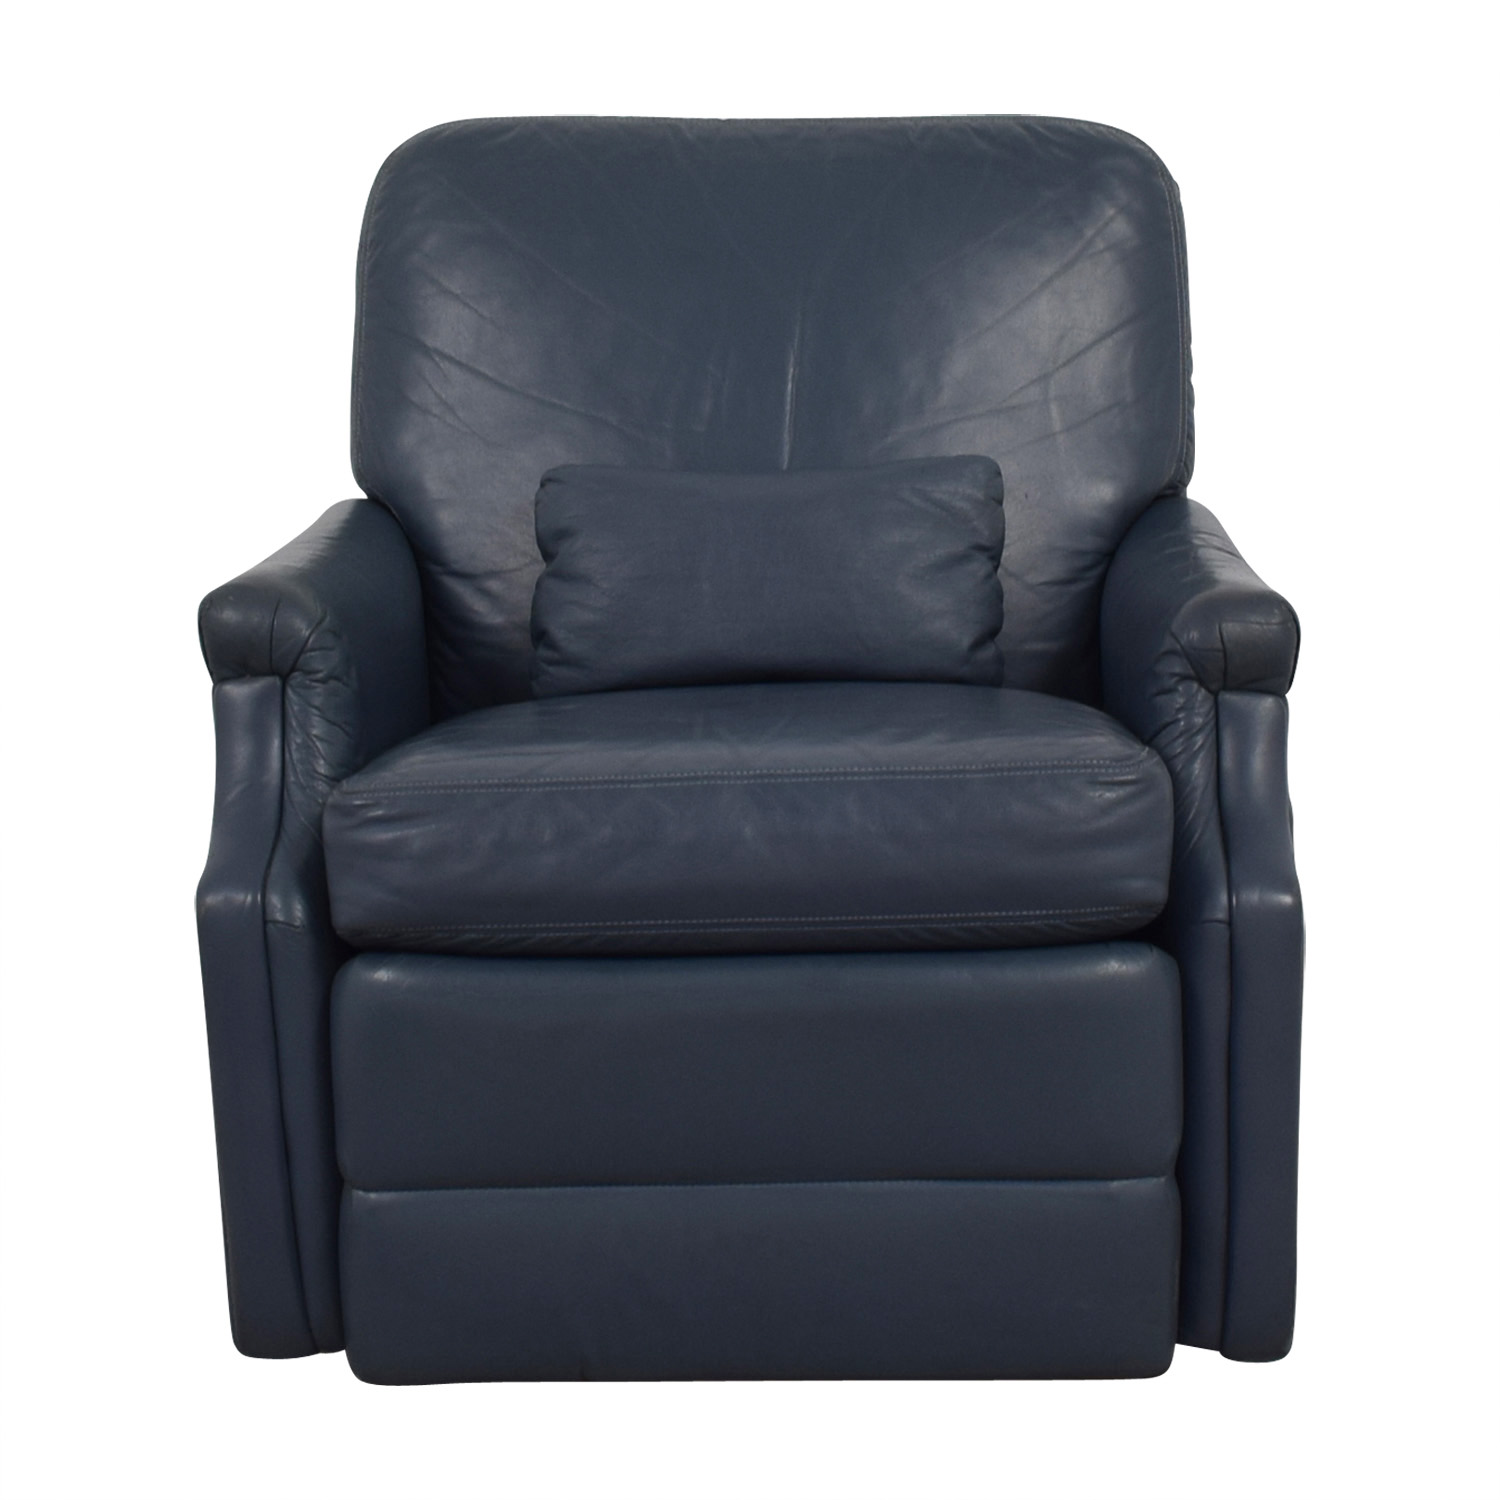 buy Barcalounger Manual Reclining Arm Chair Barcalounger Chairs